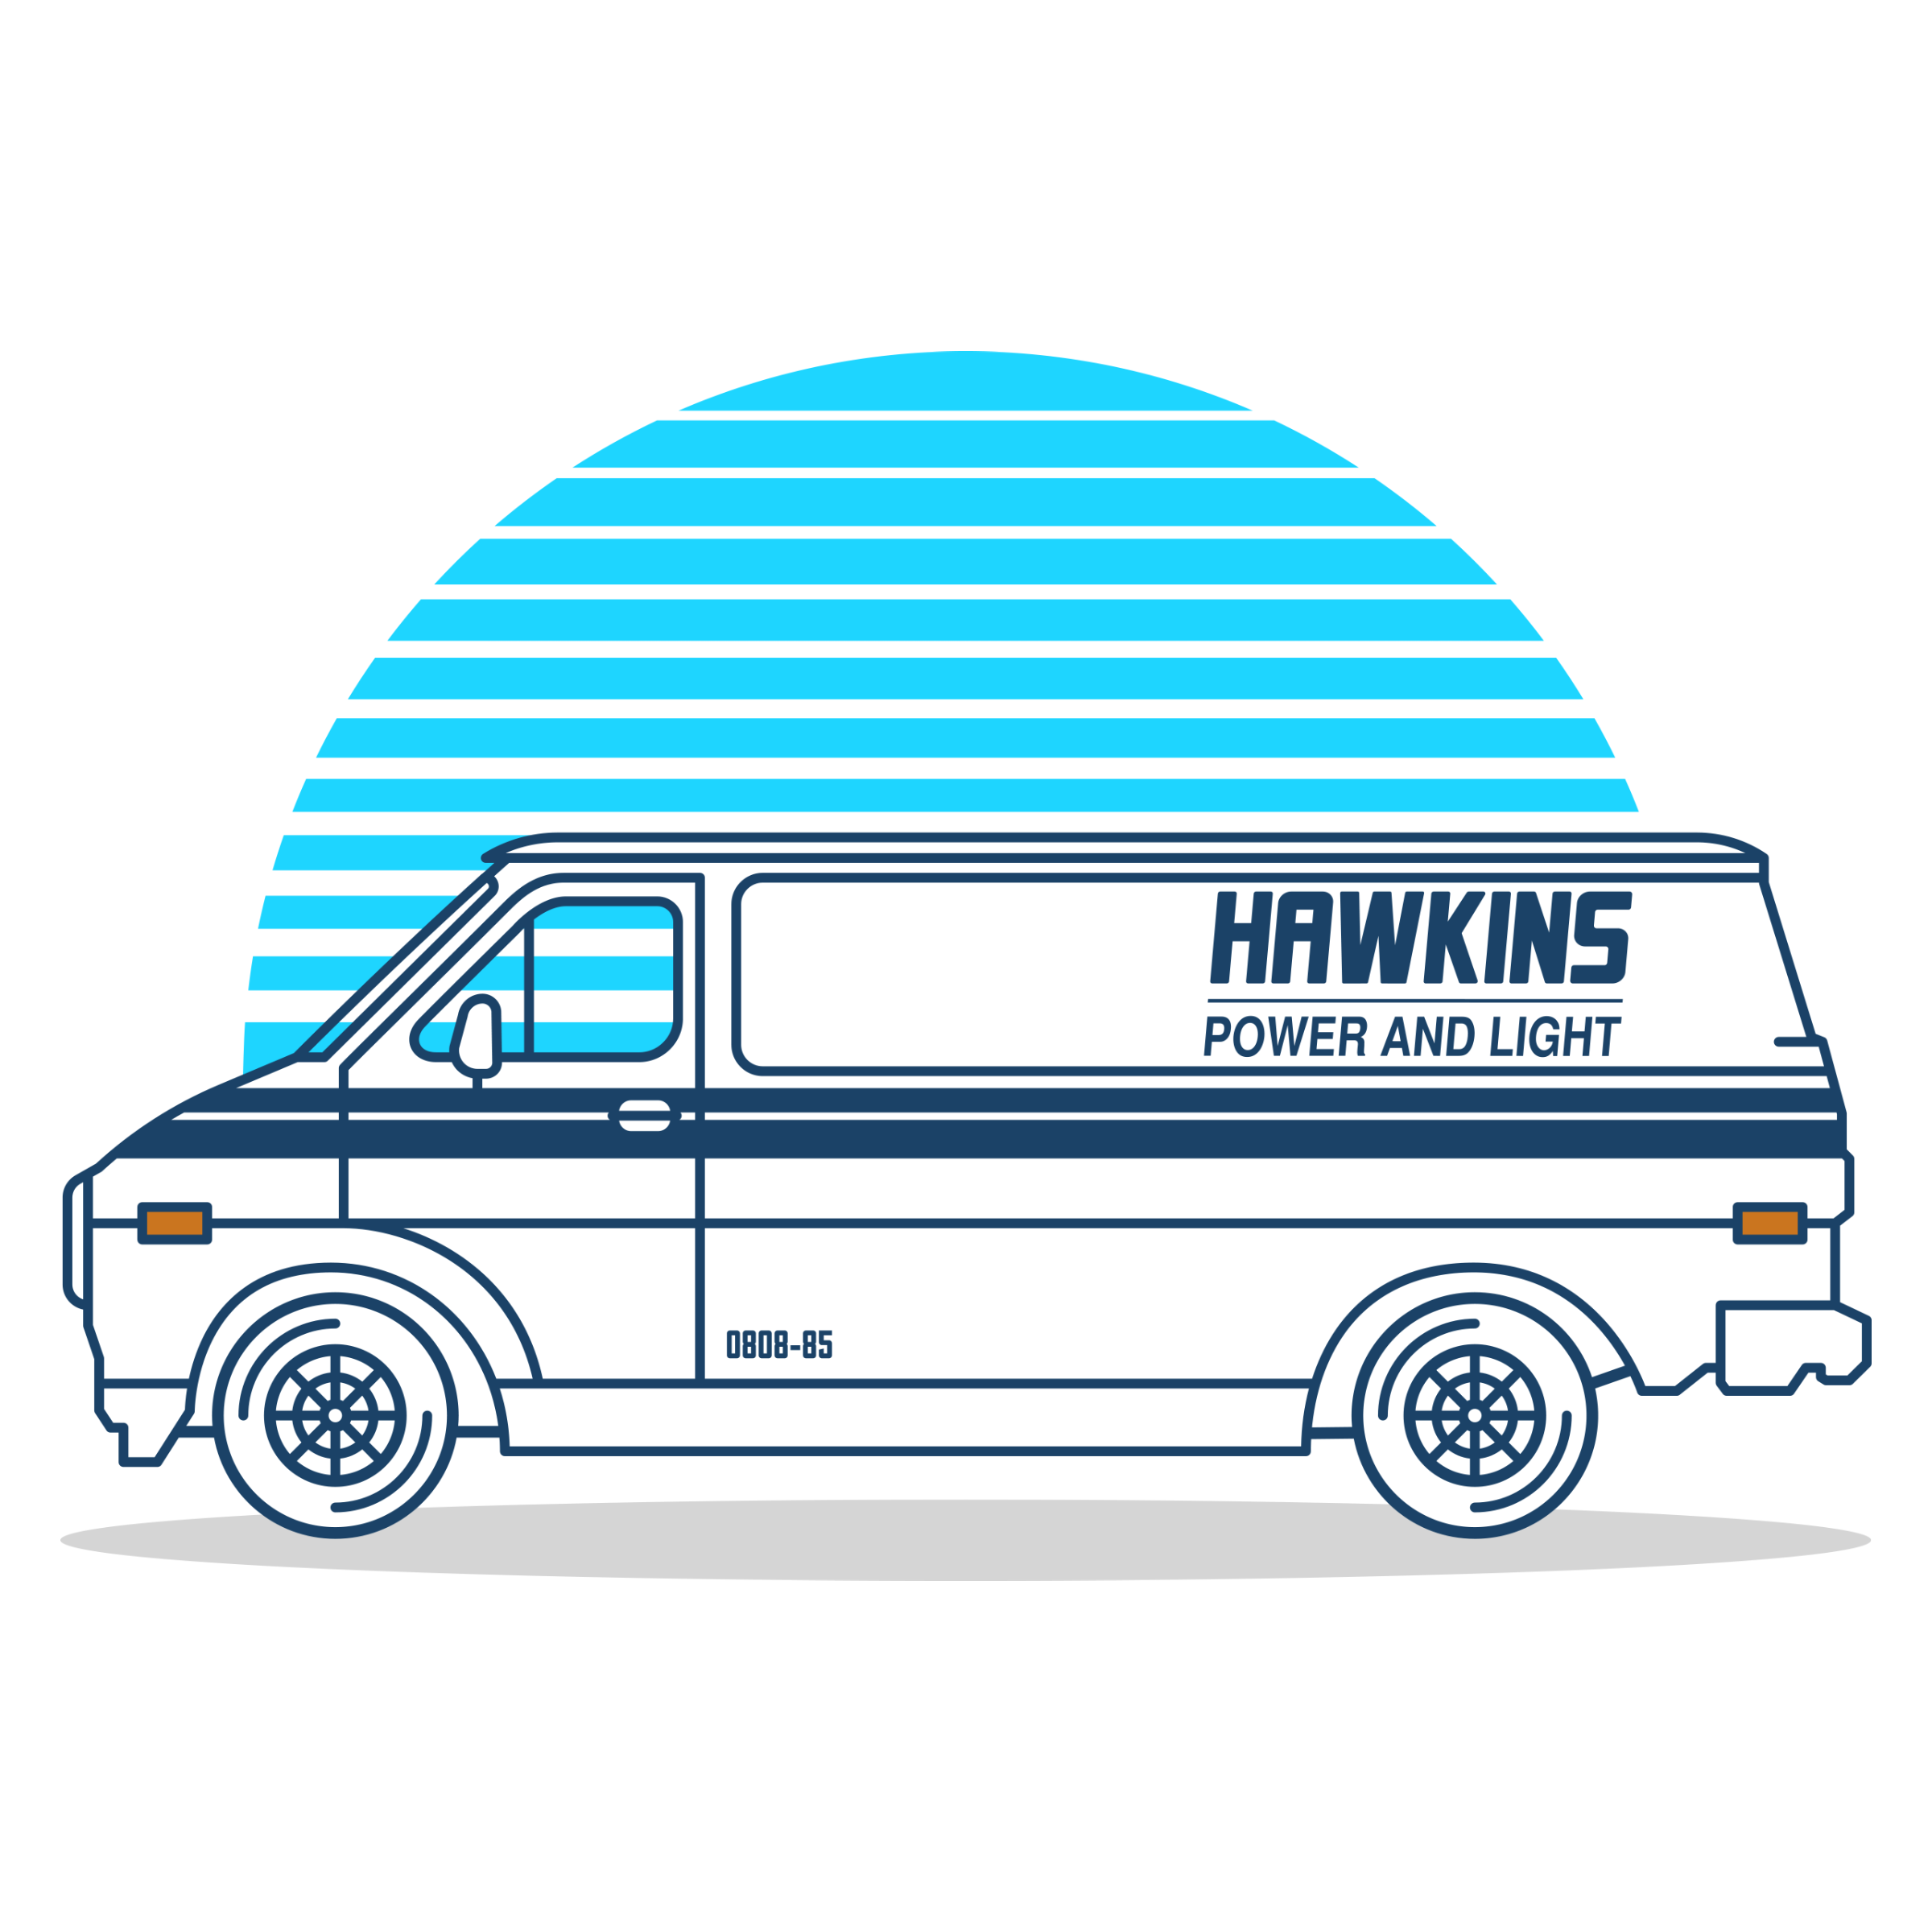 Hawkins Power and Light Van